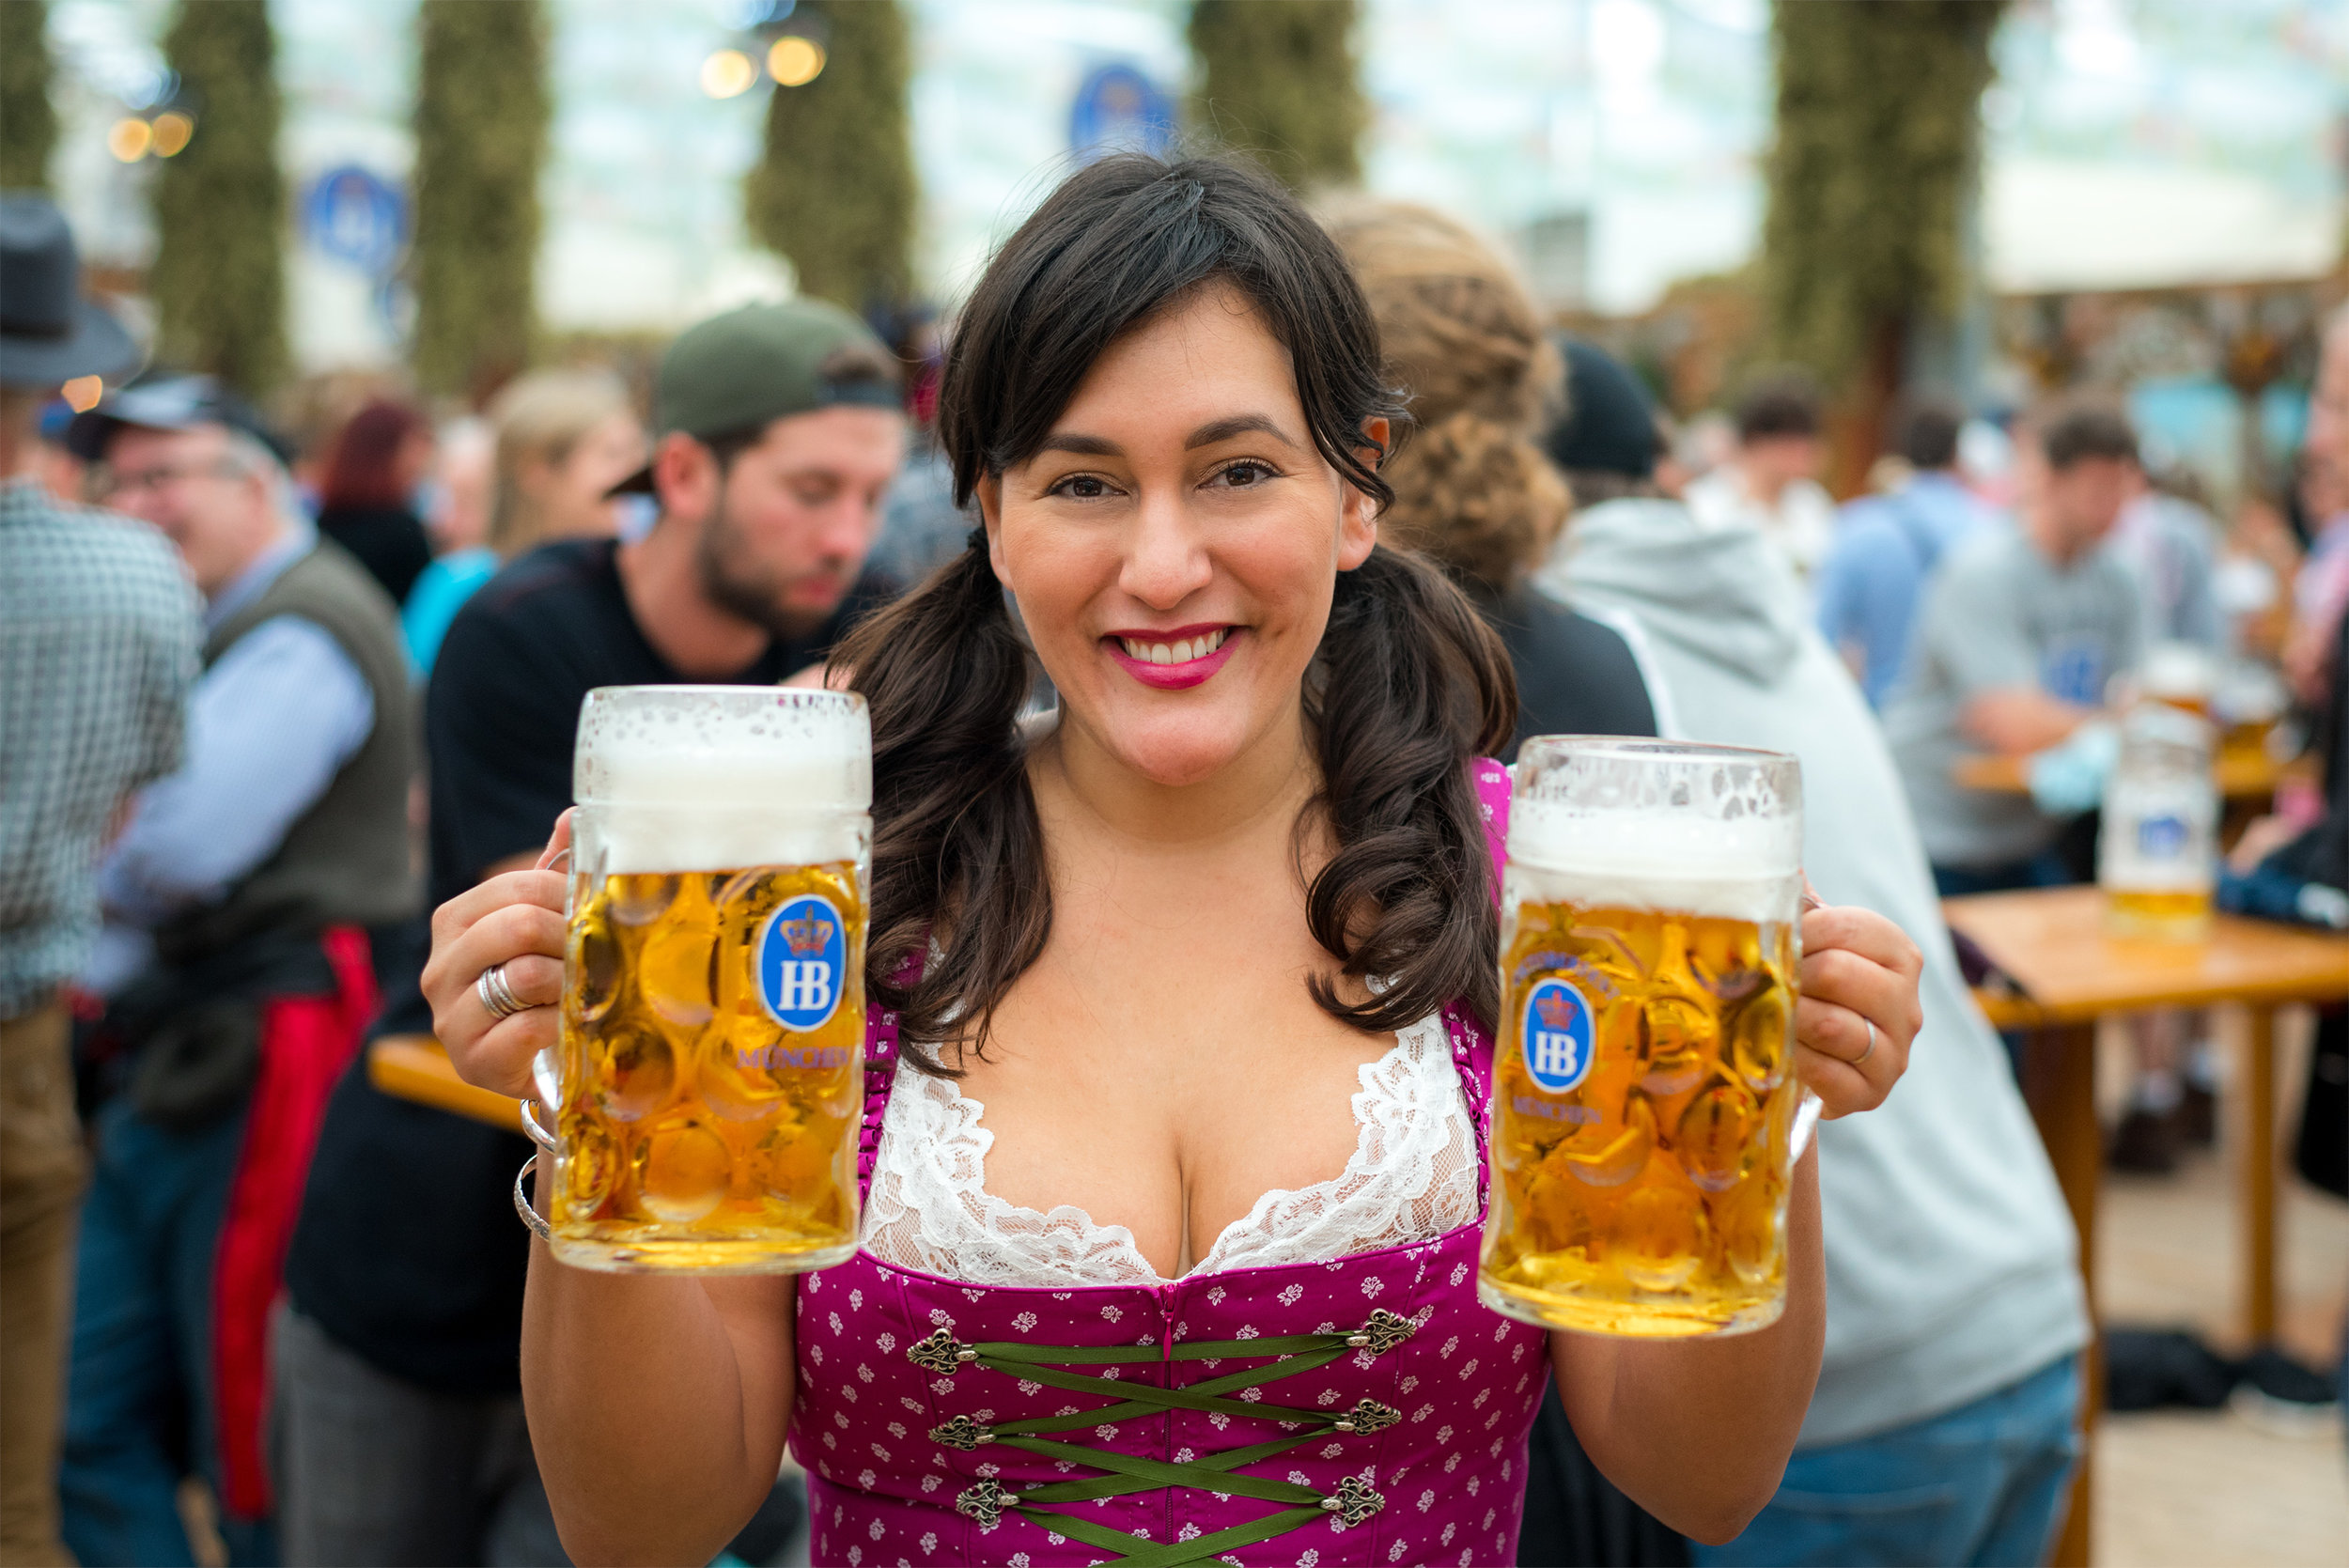 Oktoberfest in Munich  How to Make the Most of Your Trip     No     Oktoberfest in Munich  How to Make the Most of Your Trip